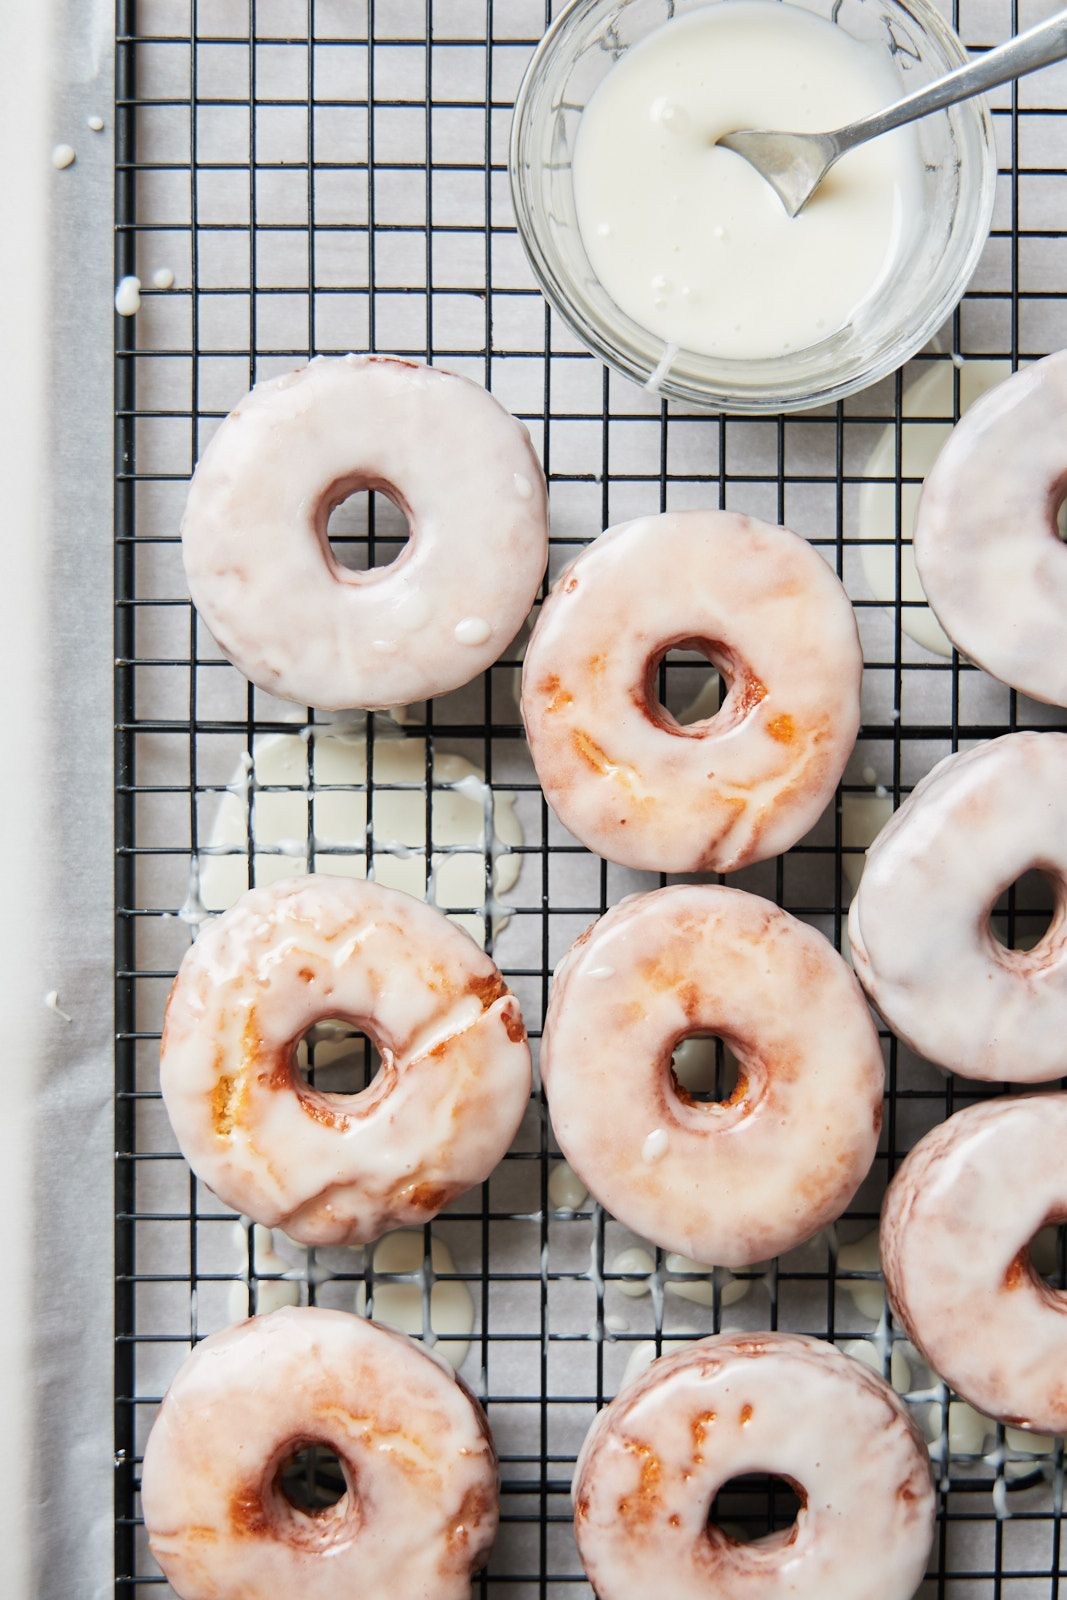 Homemade Sour Cream Glazed Doughnuts The Best Easiest Olive Mango Recipe In 2020 Food Homemade Sour Cream Donut Recipes